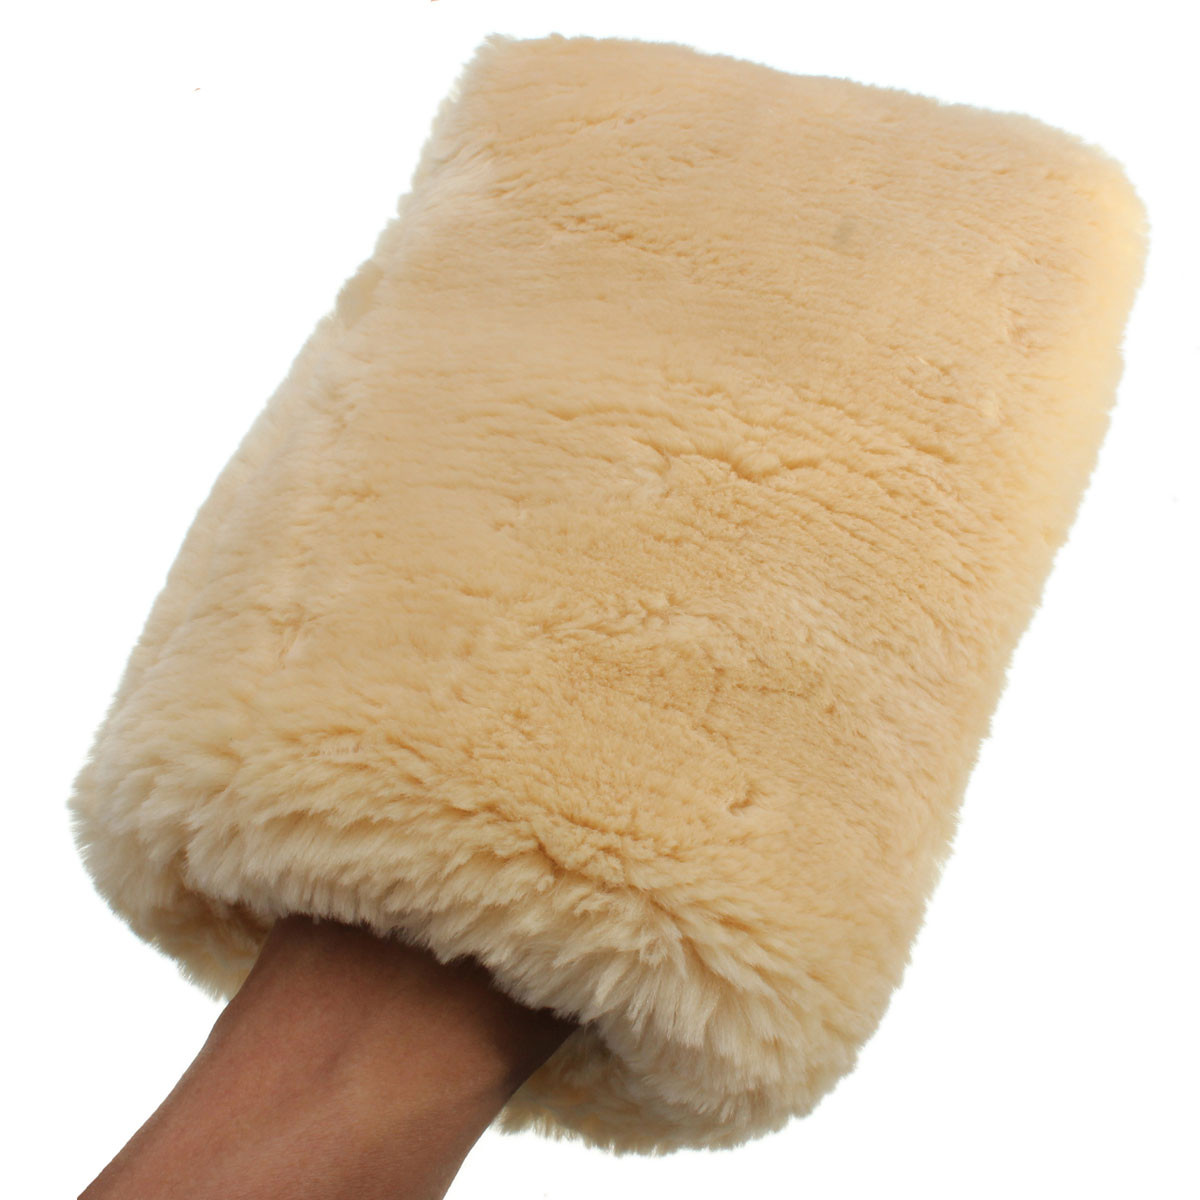 [해외]1 조각 24 x 16cm Lambswool Wash Mitt 부드러운 양모 자동차 청소 장갑/1Piece 24 x 16cm Lambswool Wash Mitt Soft Sheepskin Car Cleaning Glove